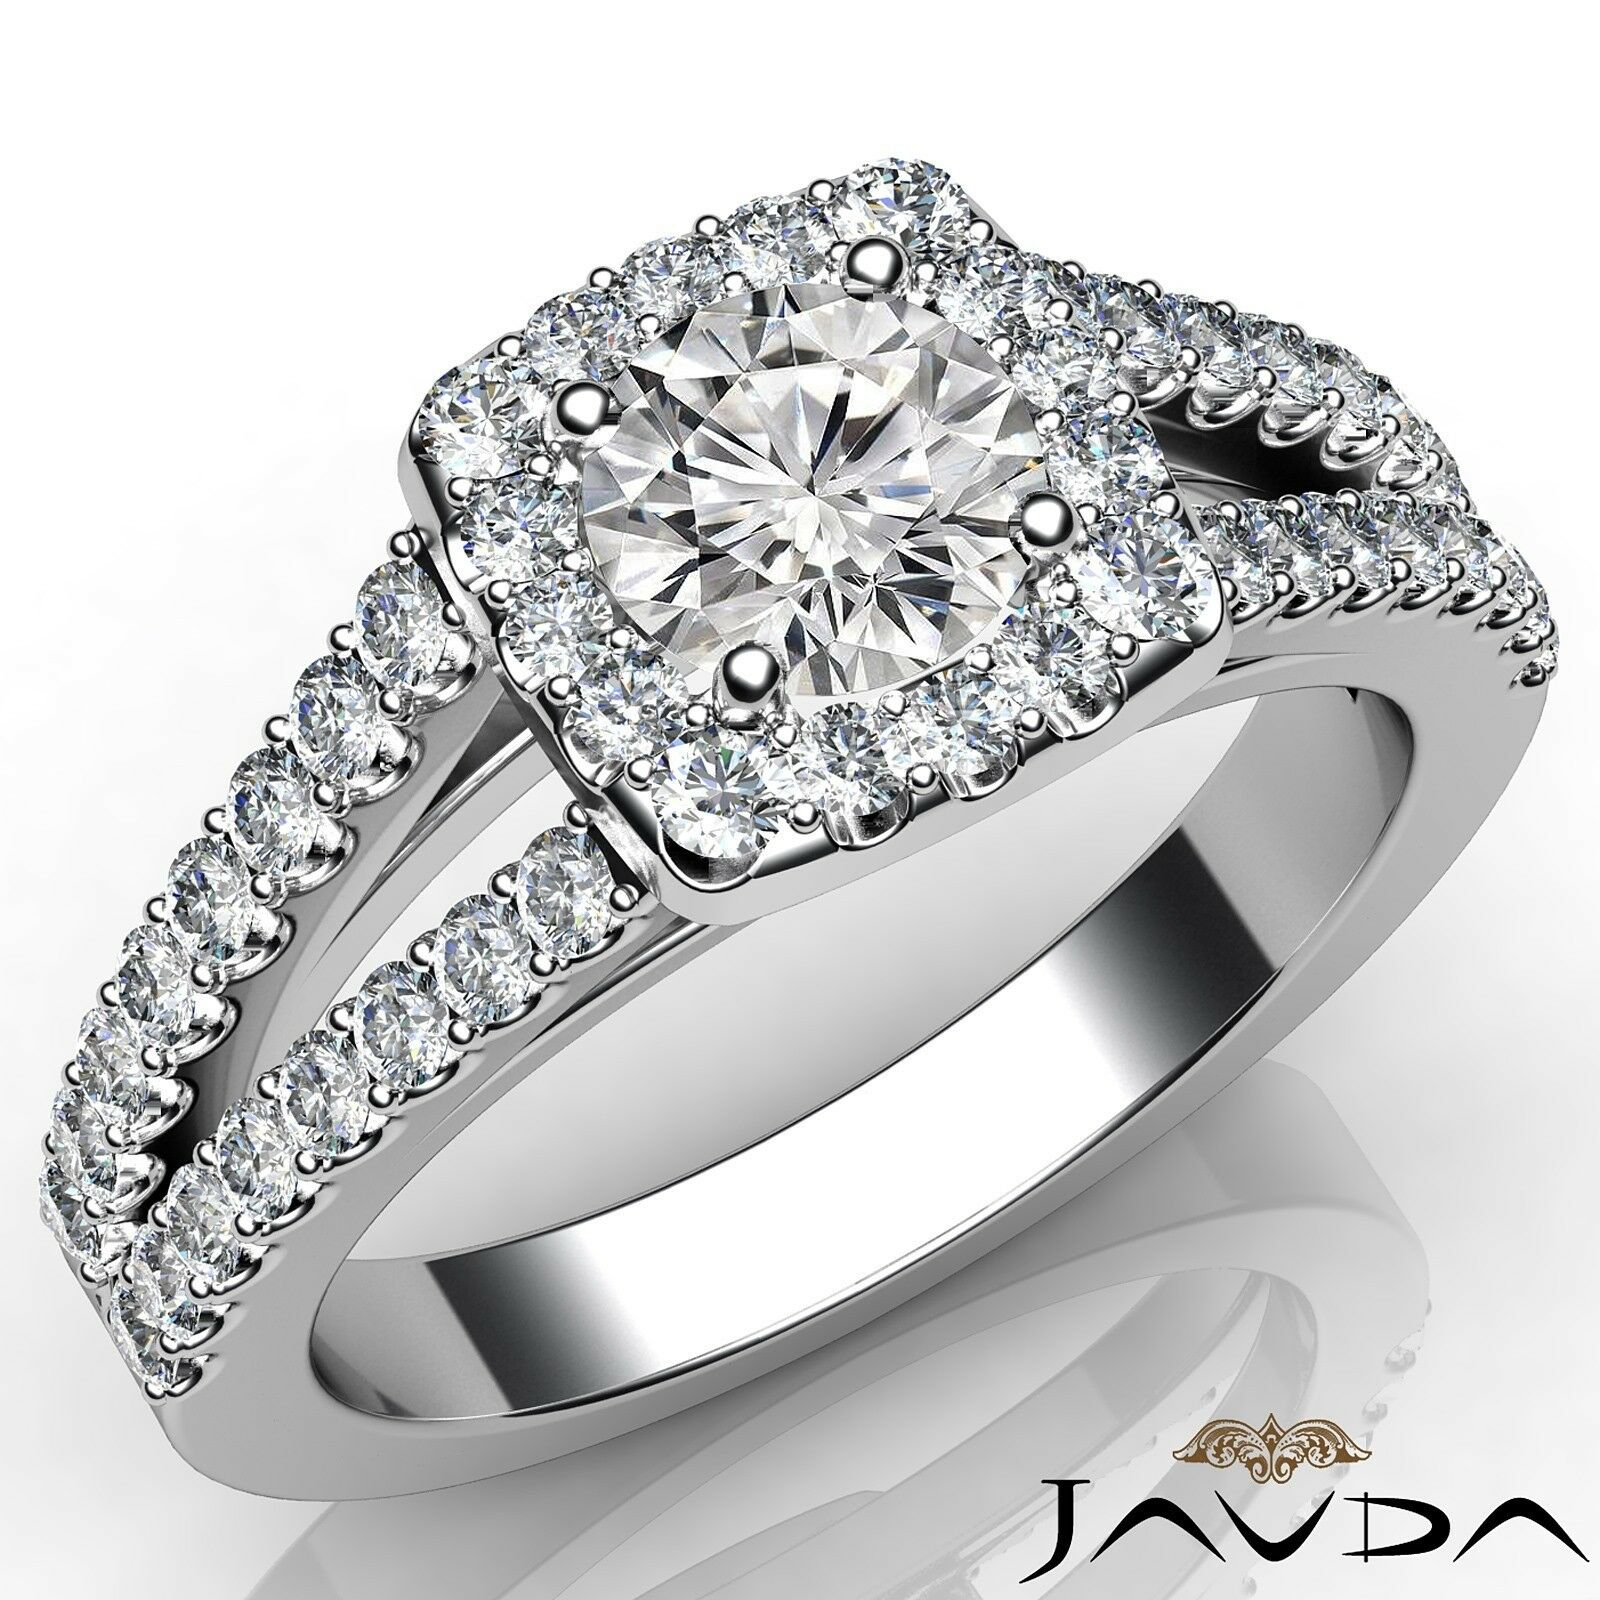 1.15ctw Scalloped Halo Round Diamond Engagement Ring GIA E-VVS2 White Gold Rings